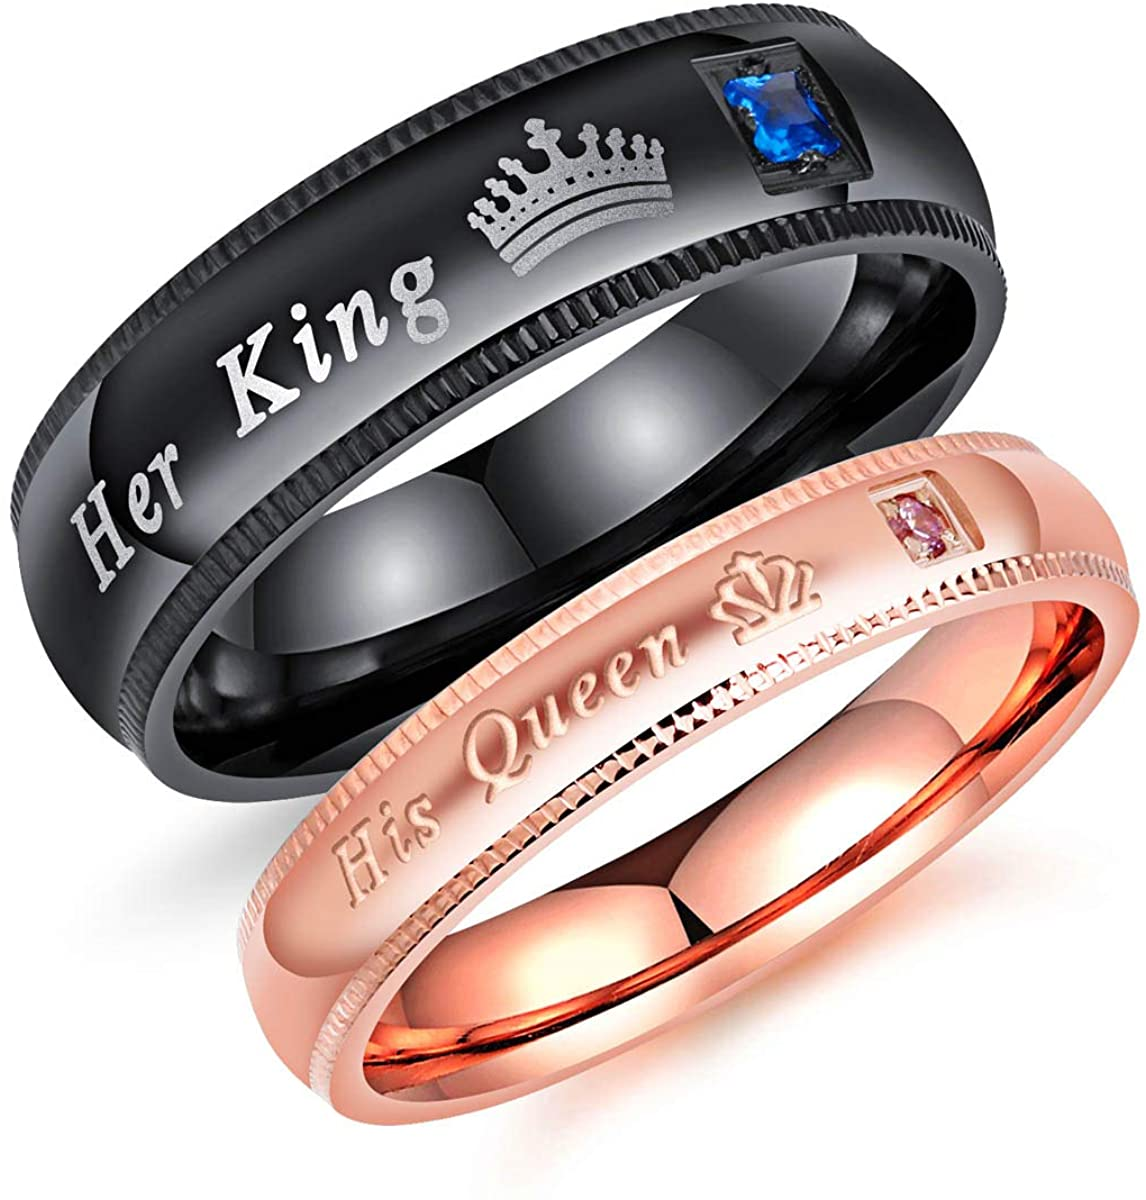 Fate Love Jewelry 2Pcs Matching Set Stainless Her Queen & His King Black/Rose Gold Couple Rings Bands, Love Gift